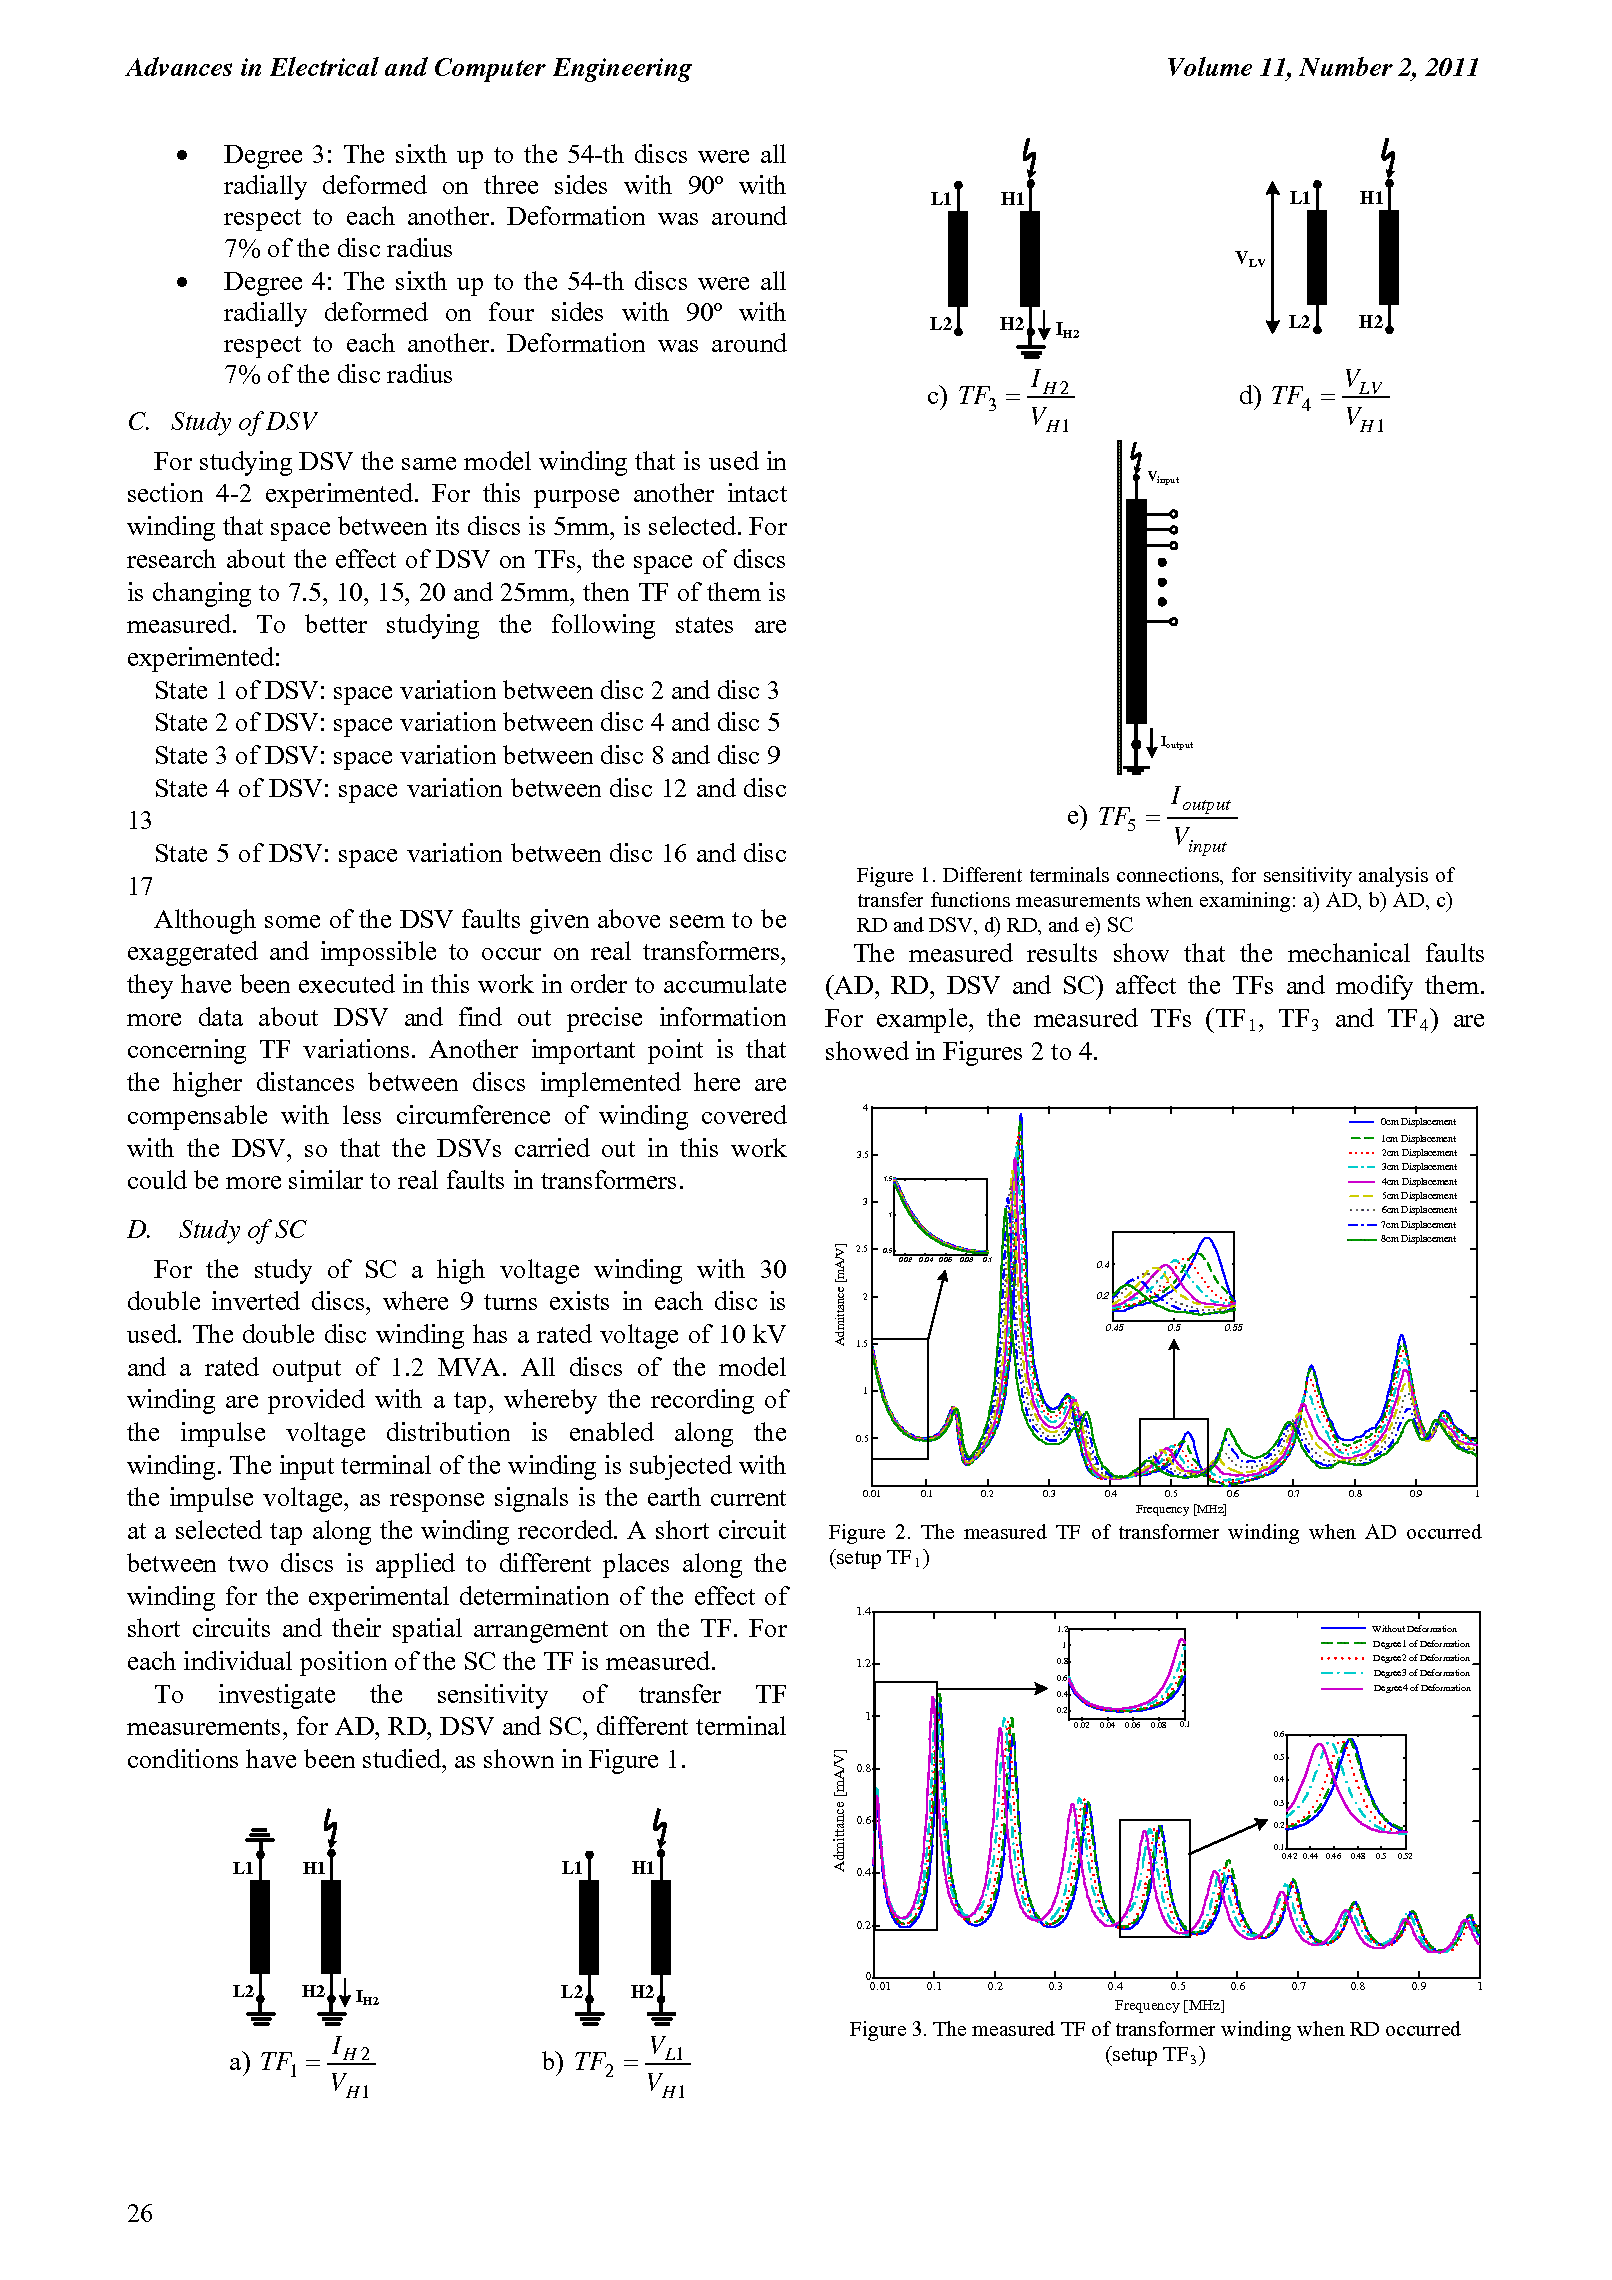 PDF Quickview for paper with DOI:10.4316/AECE.2011.02004